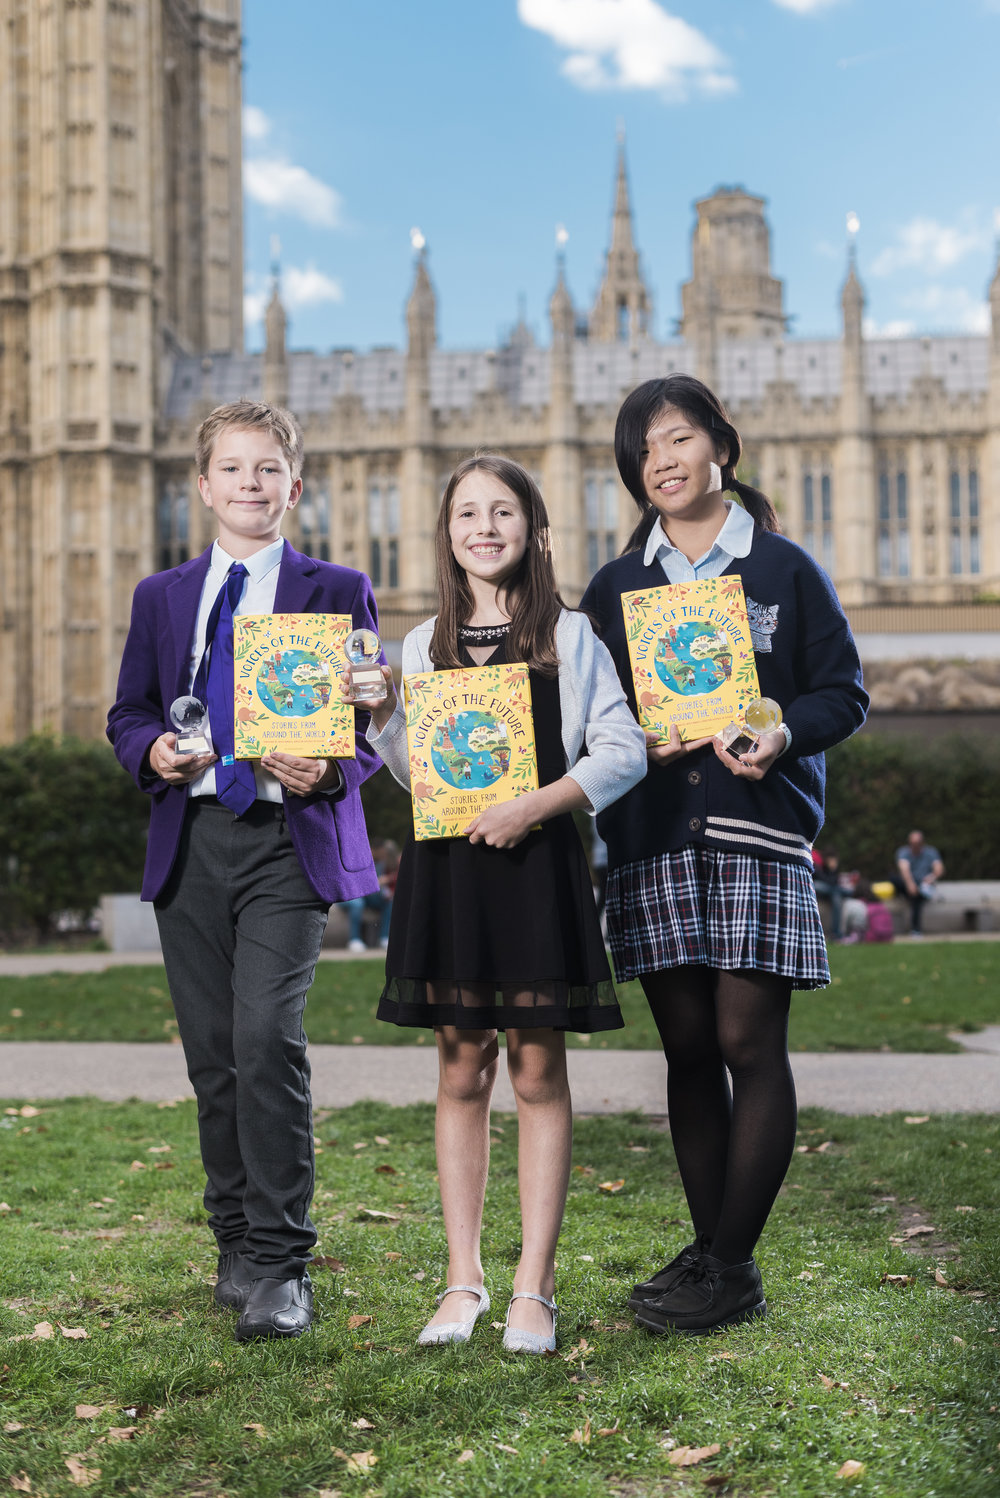 Jona David, Andrea Wilson and Ying-Xuan, Child Authors at The House of Lords, London